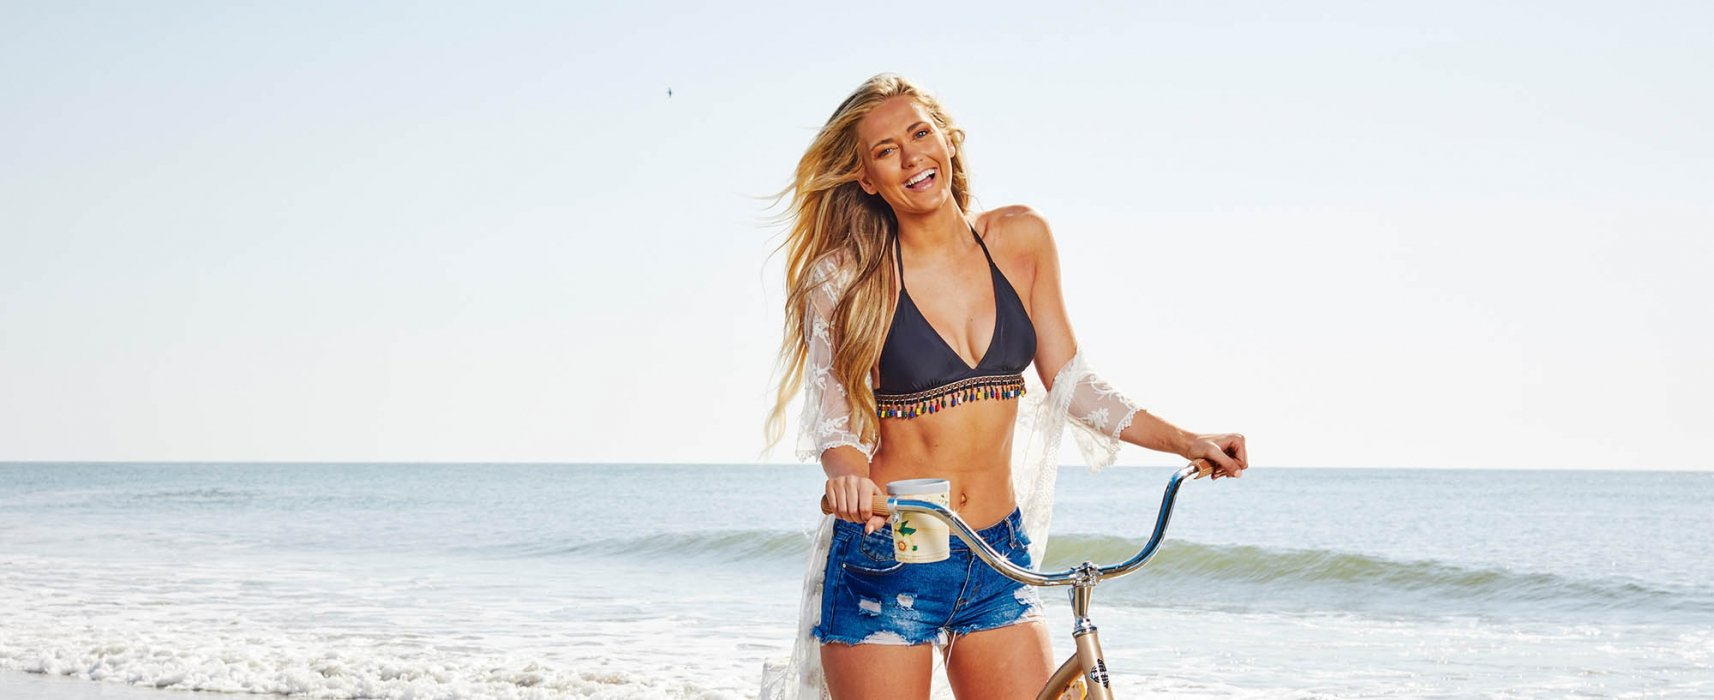 A young woman laughing with her bike on a beach - lifestyle photography